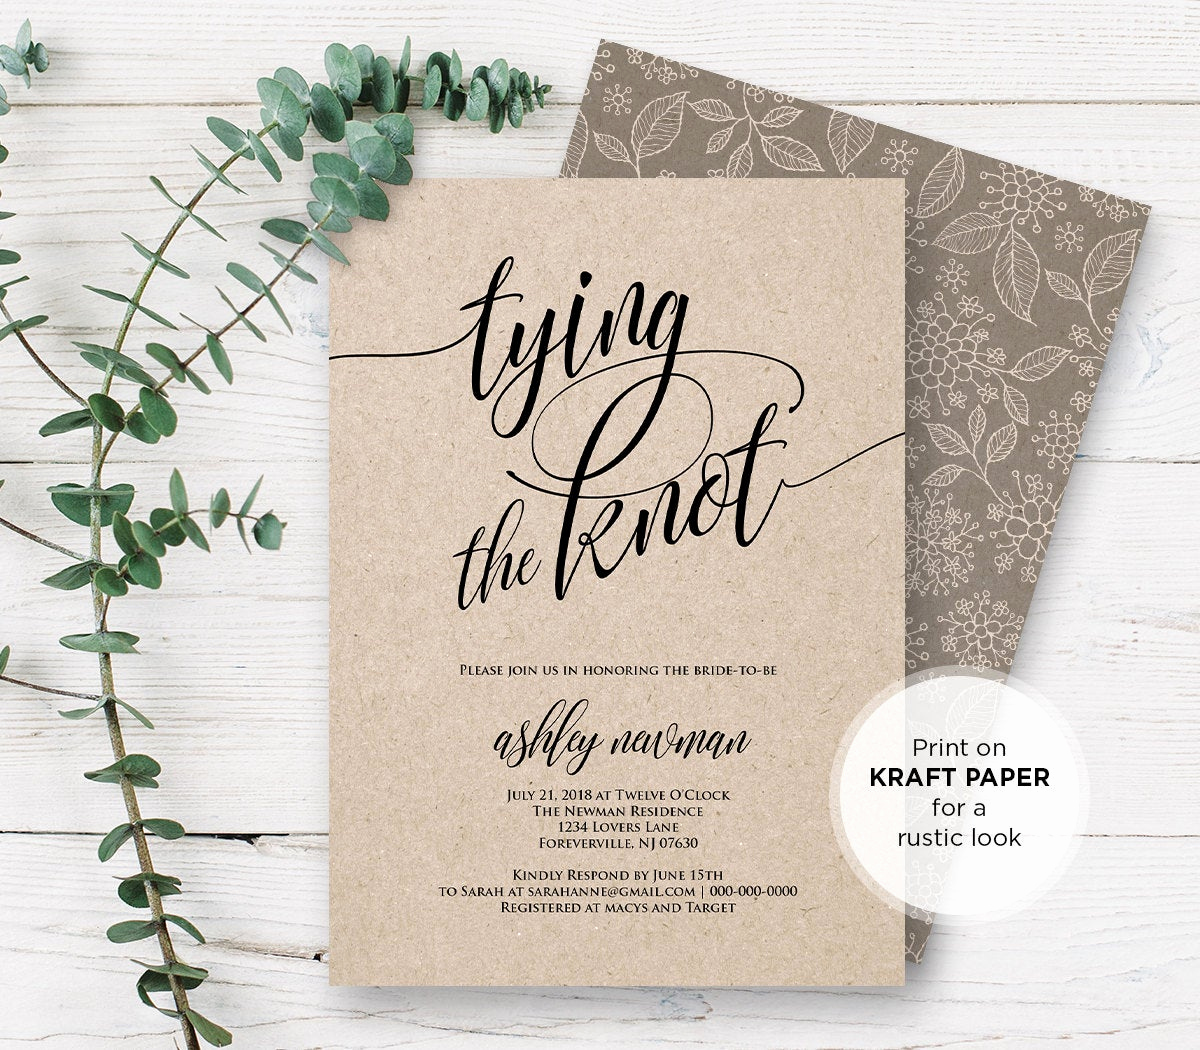 Wedding Shower Invitation Template New Rustic Bridal Shower Invitation Printable Tying the Knot